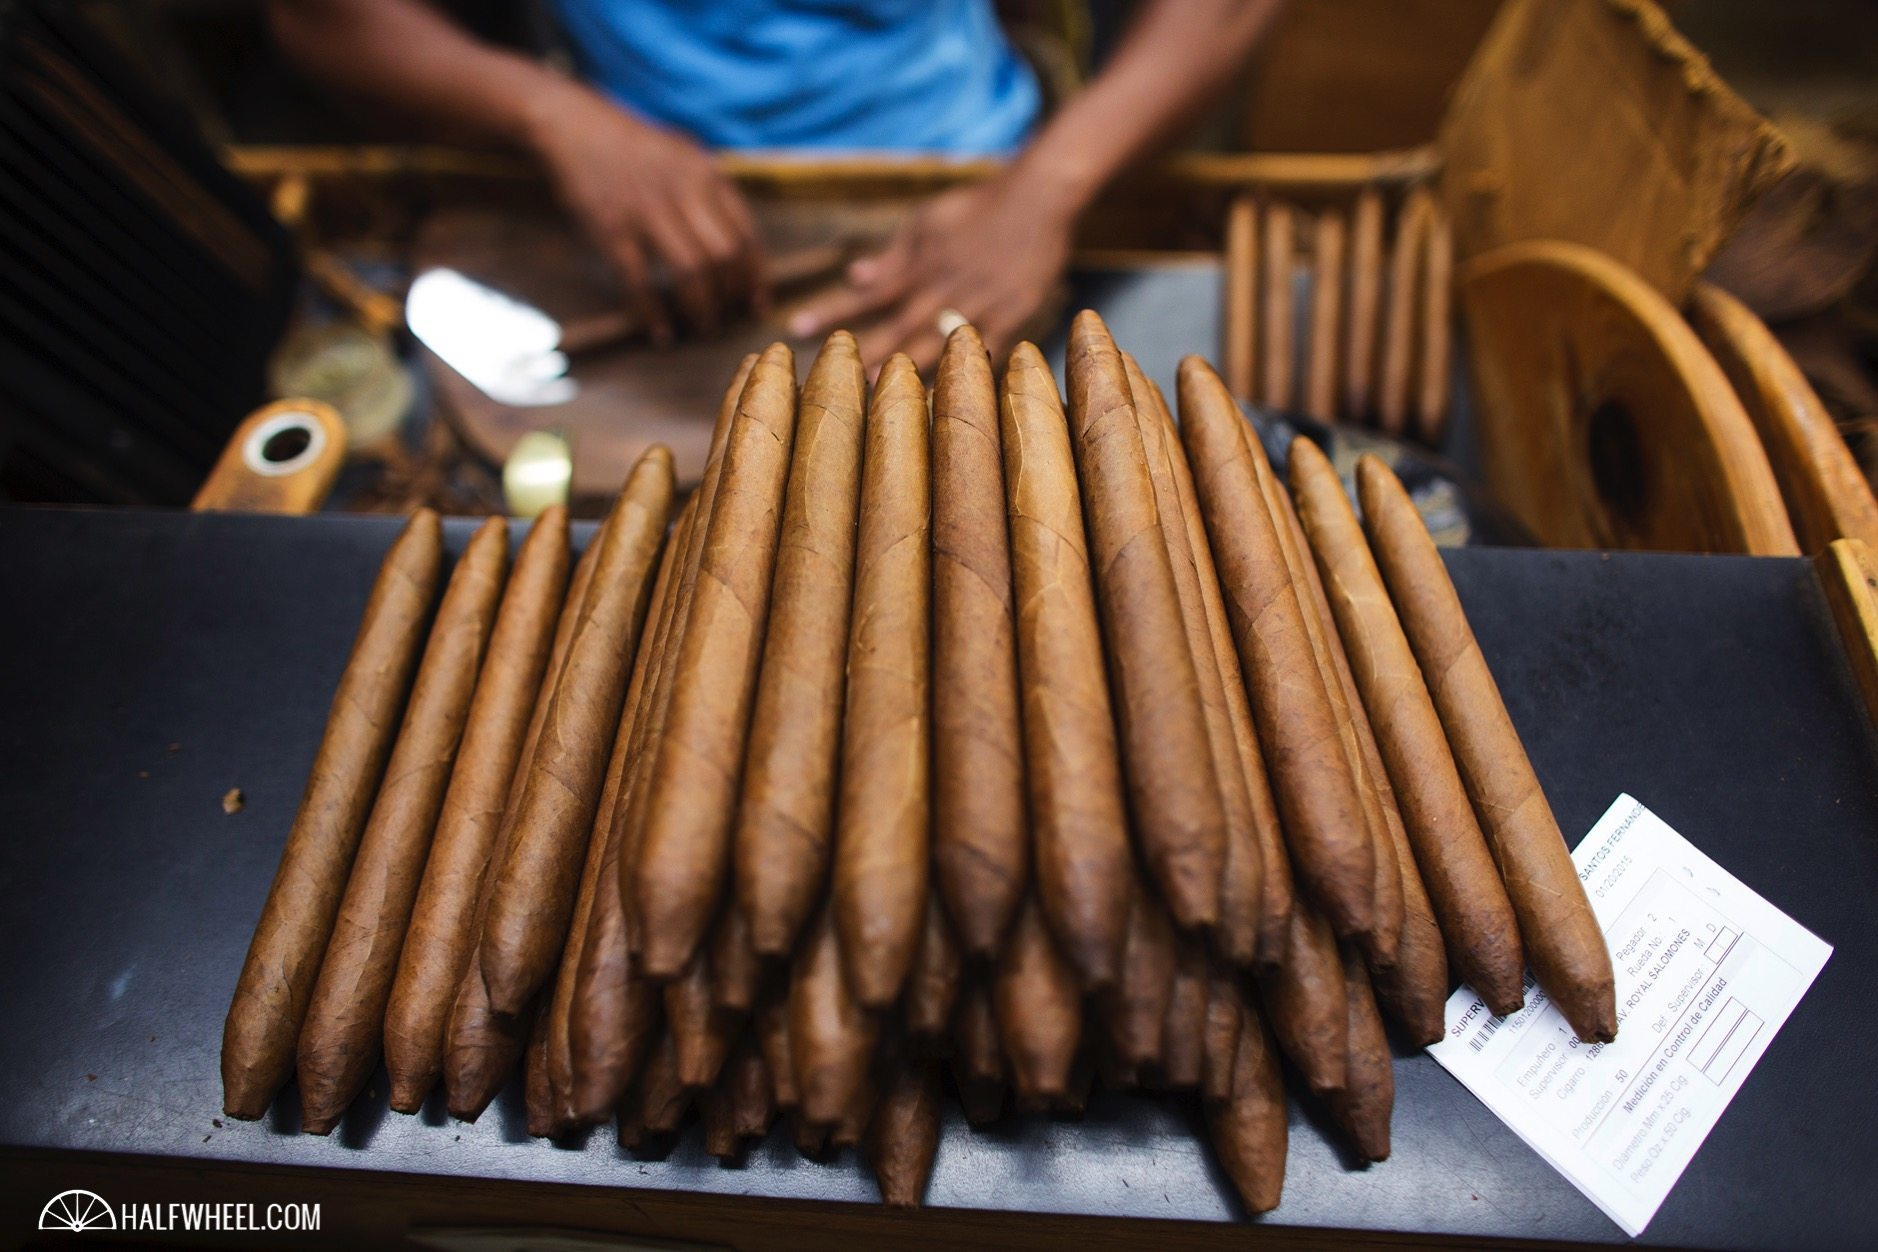 Cigars-Davidoff-Royal-Salomones.jpg